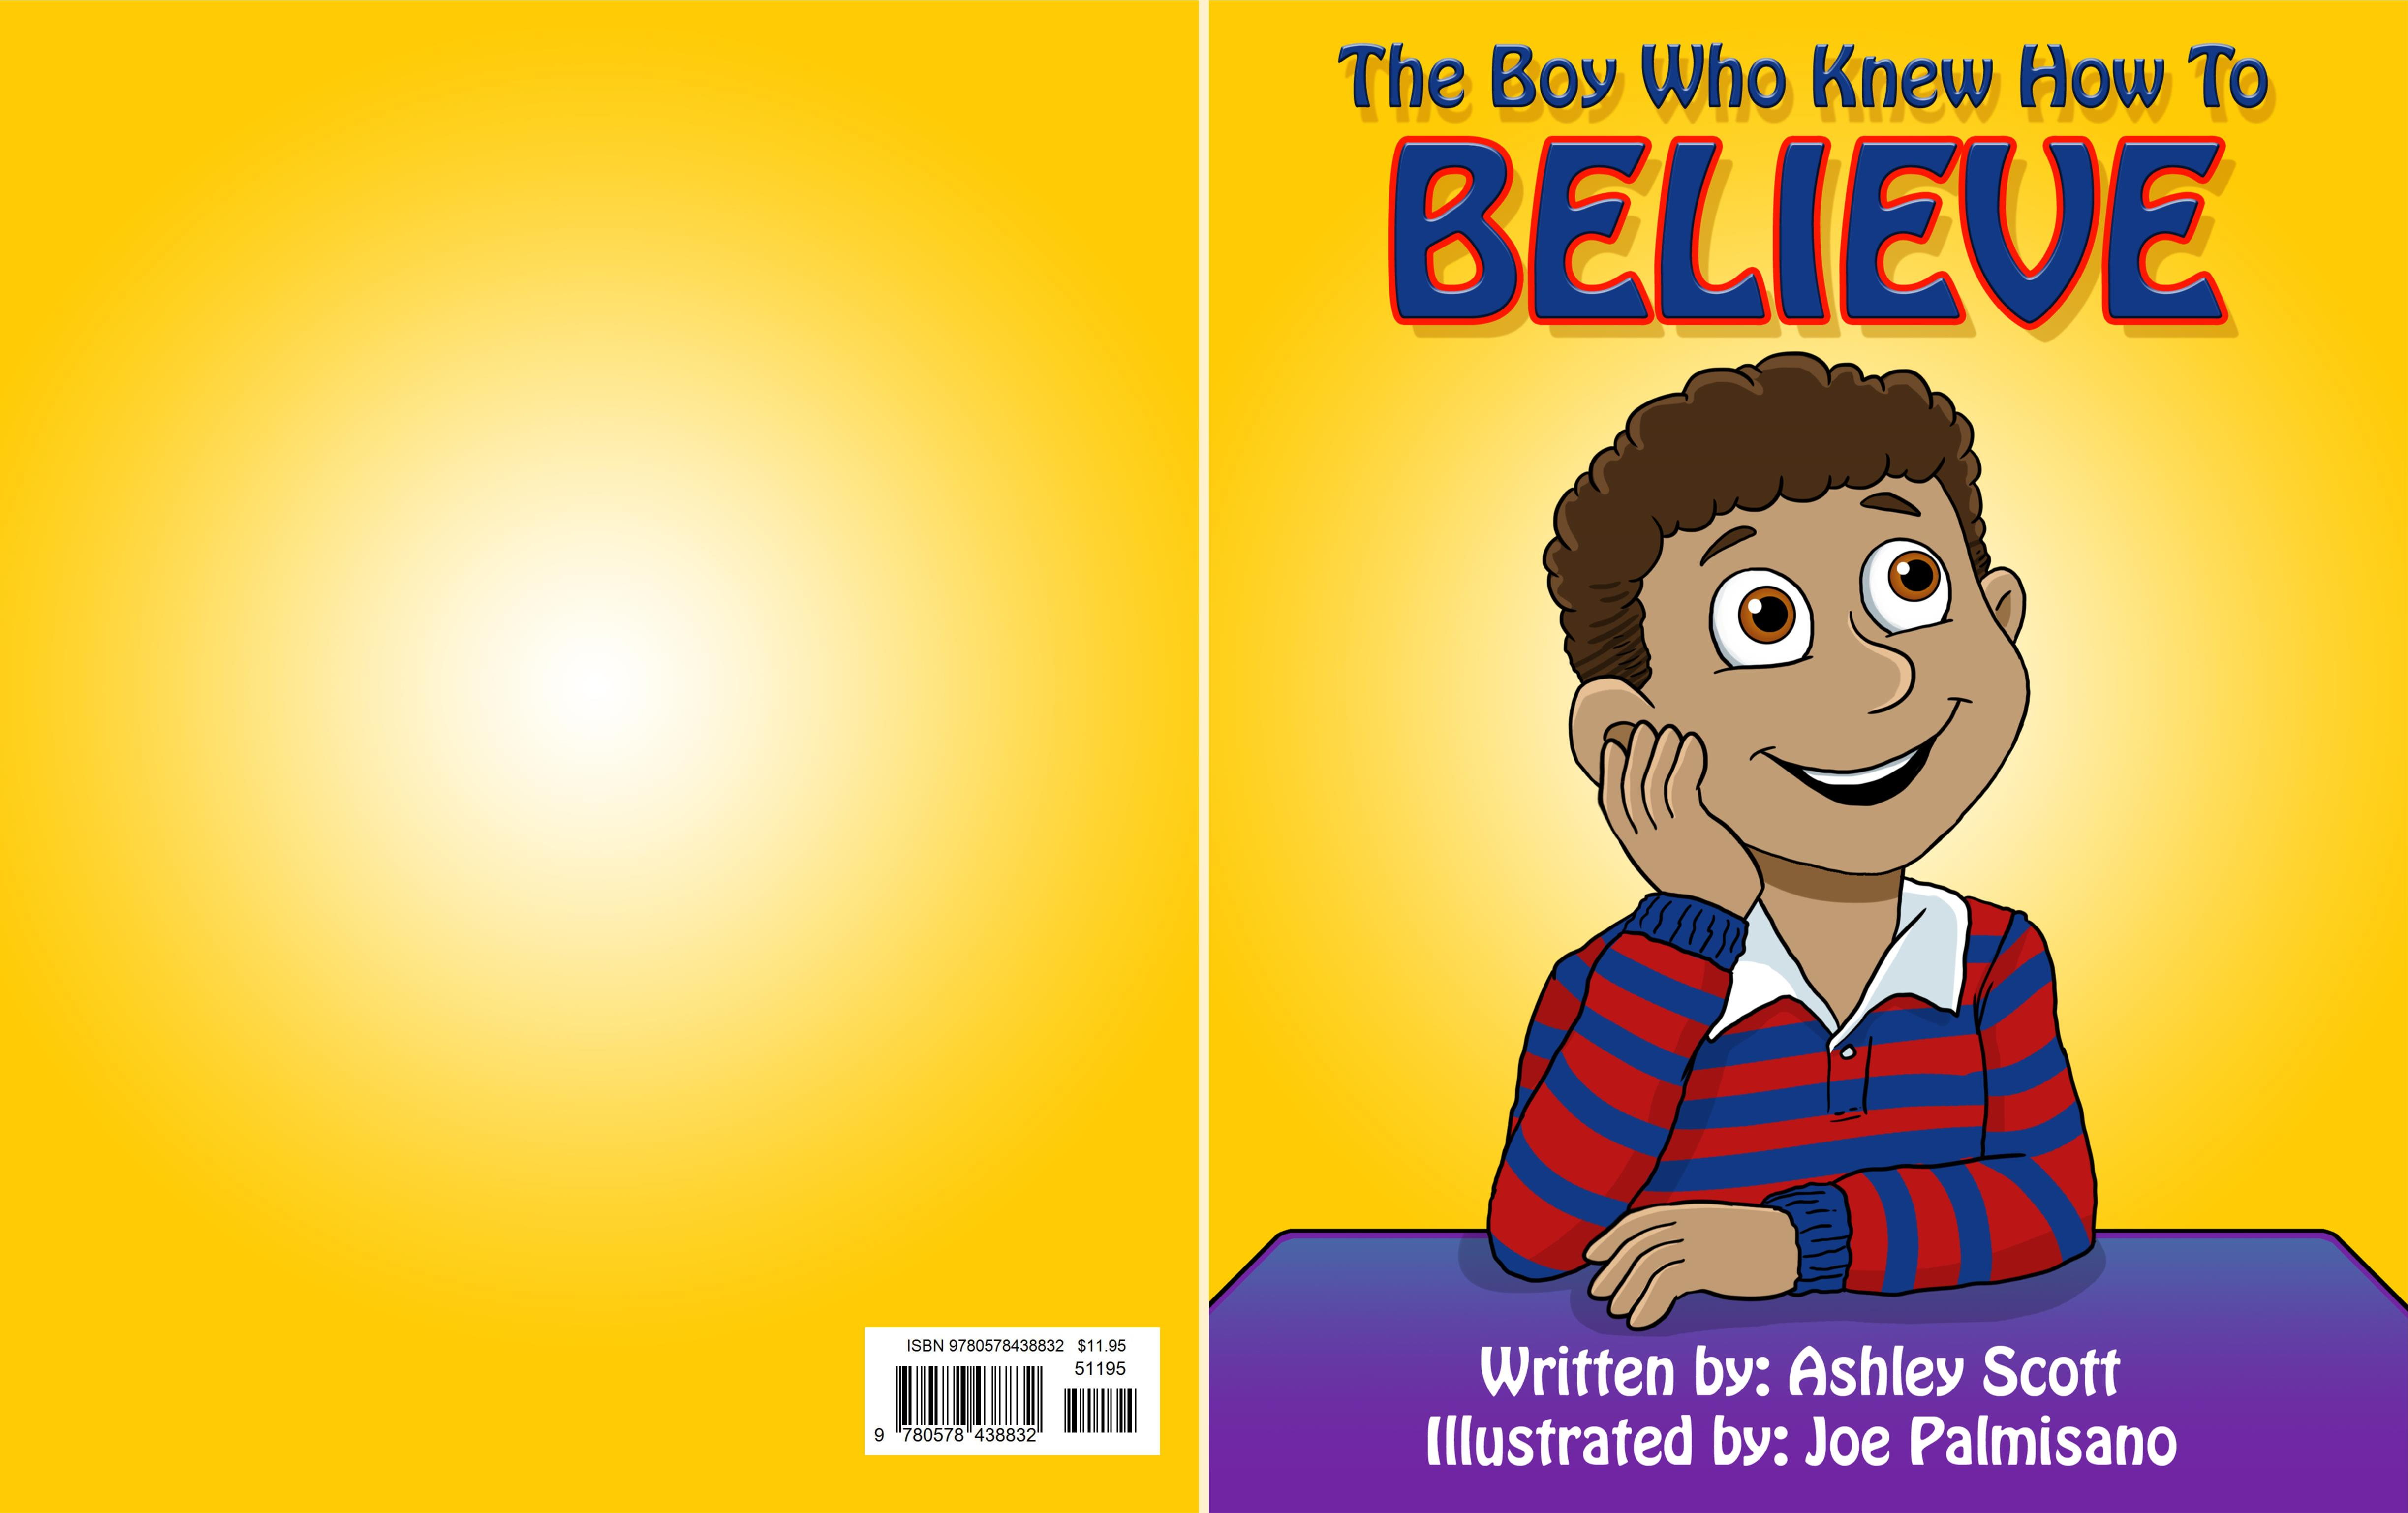 The Boy Who Knew How to Believe cover image